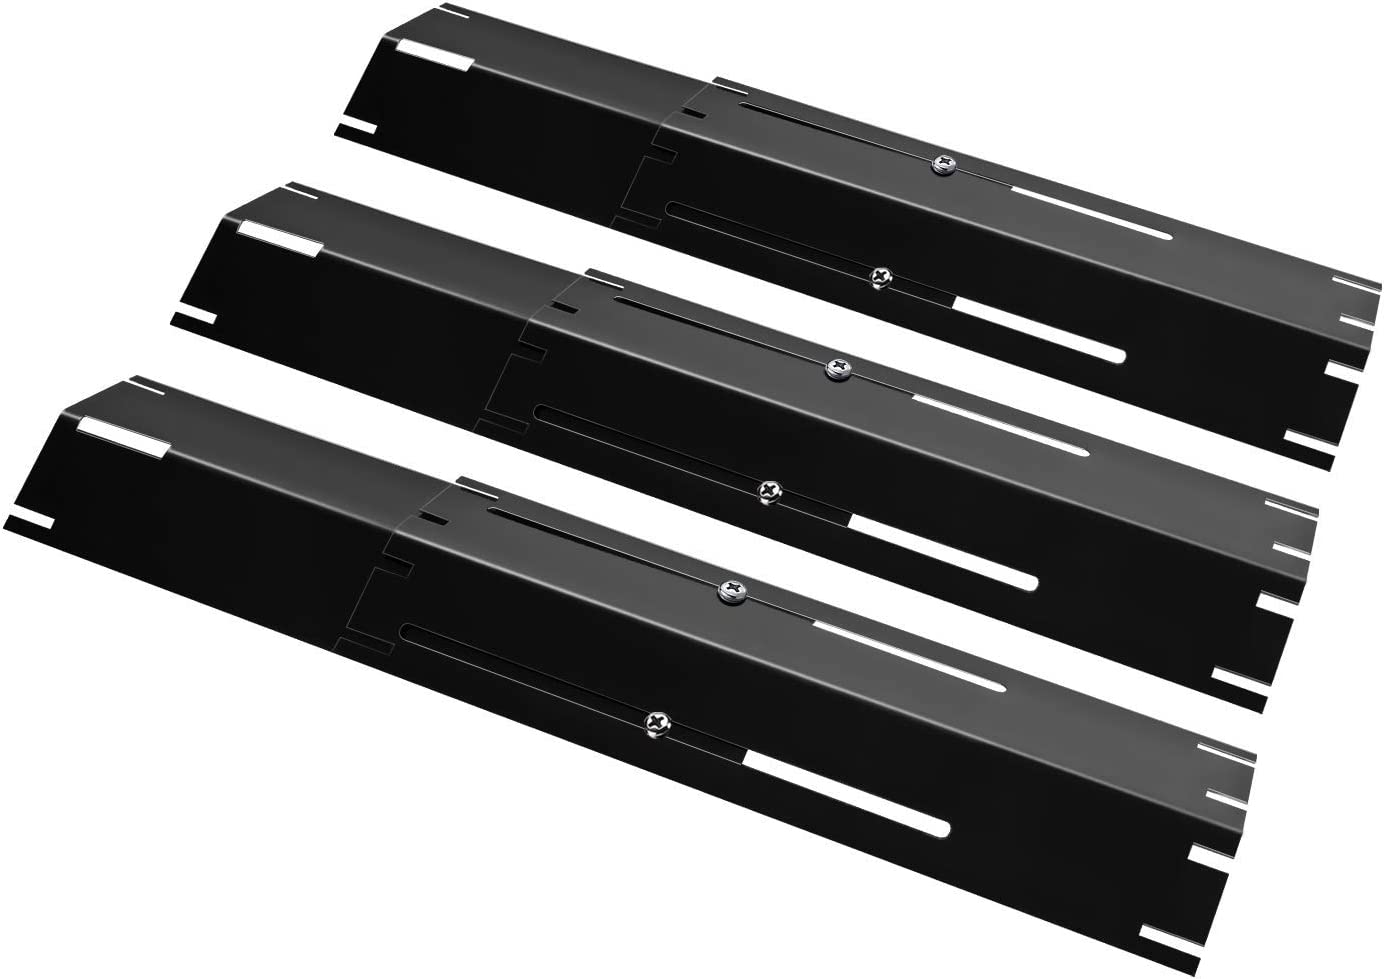 """DcYourHome Universal Adjustable Porcelain Steel Heat Plate Shield, Grill Replacement Parts, Heat Tent, Burner Cover,Flavorizer Bar Flame Tamer for Gas Grill, Extends from 11.75"""" up to 21"""" L 3 Pack"""